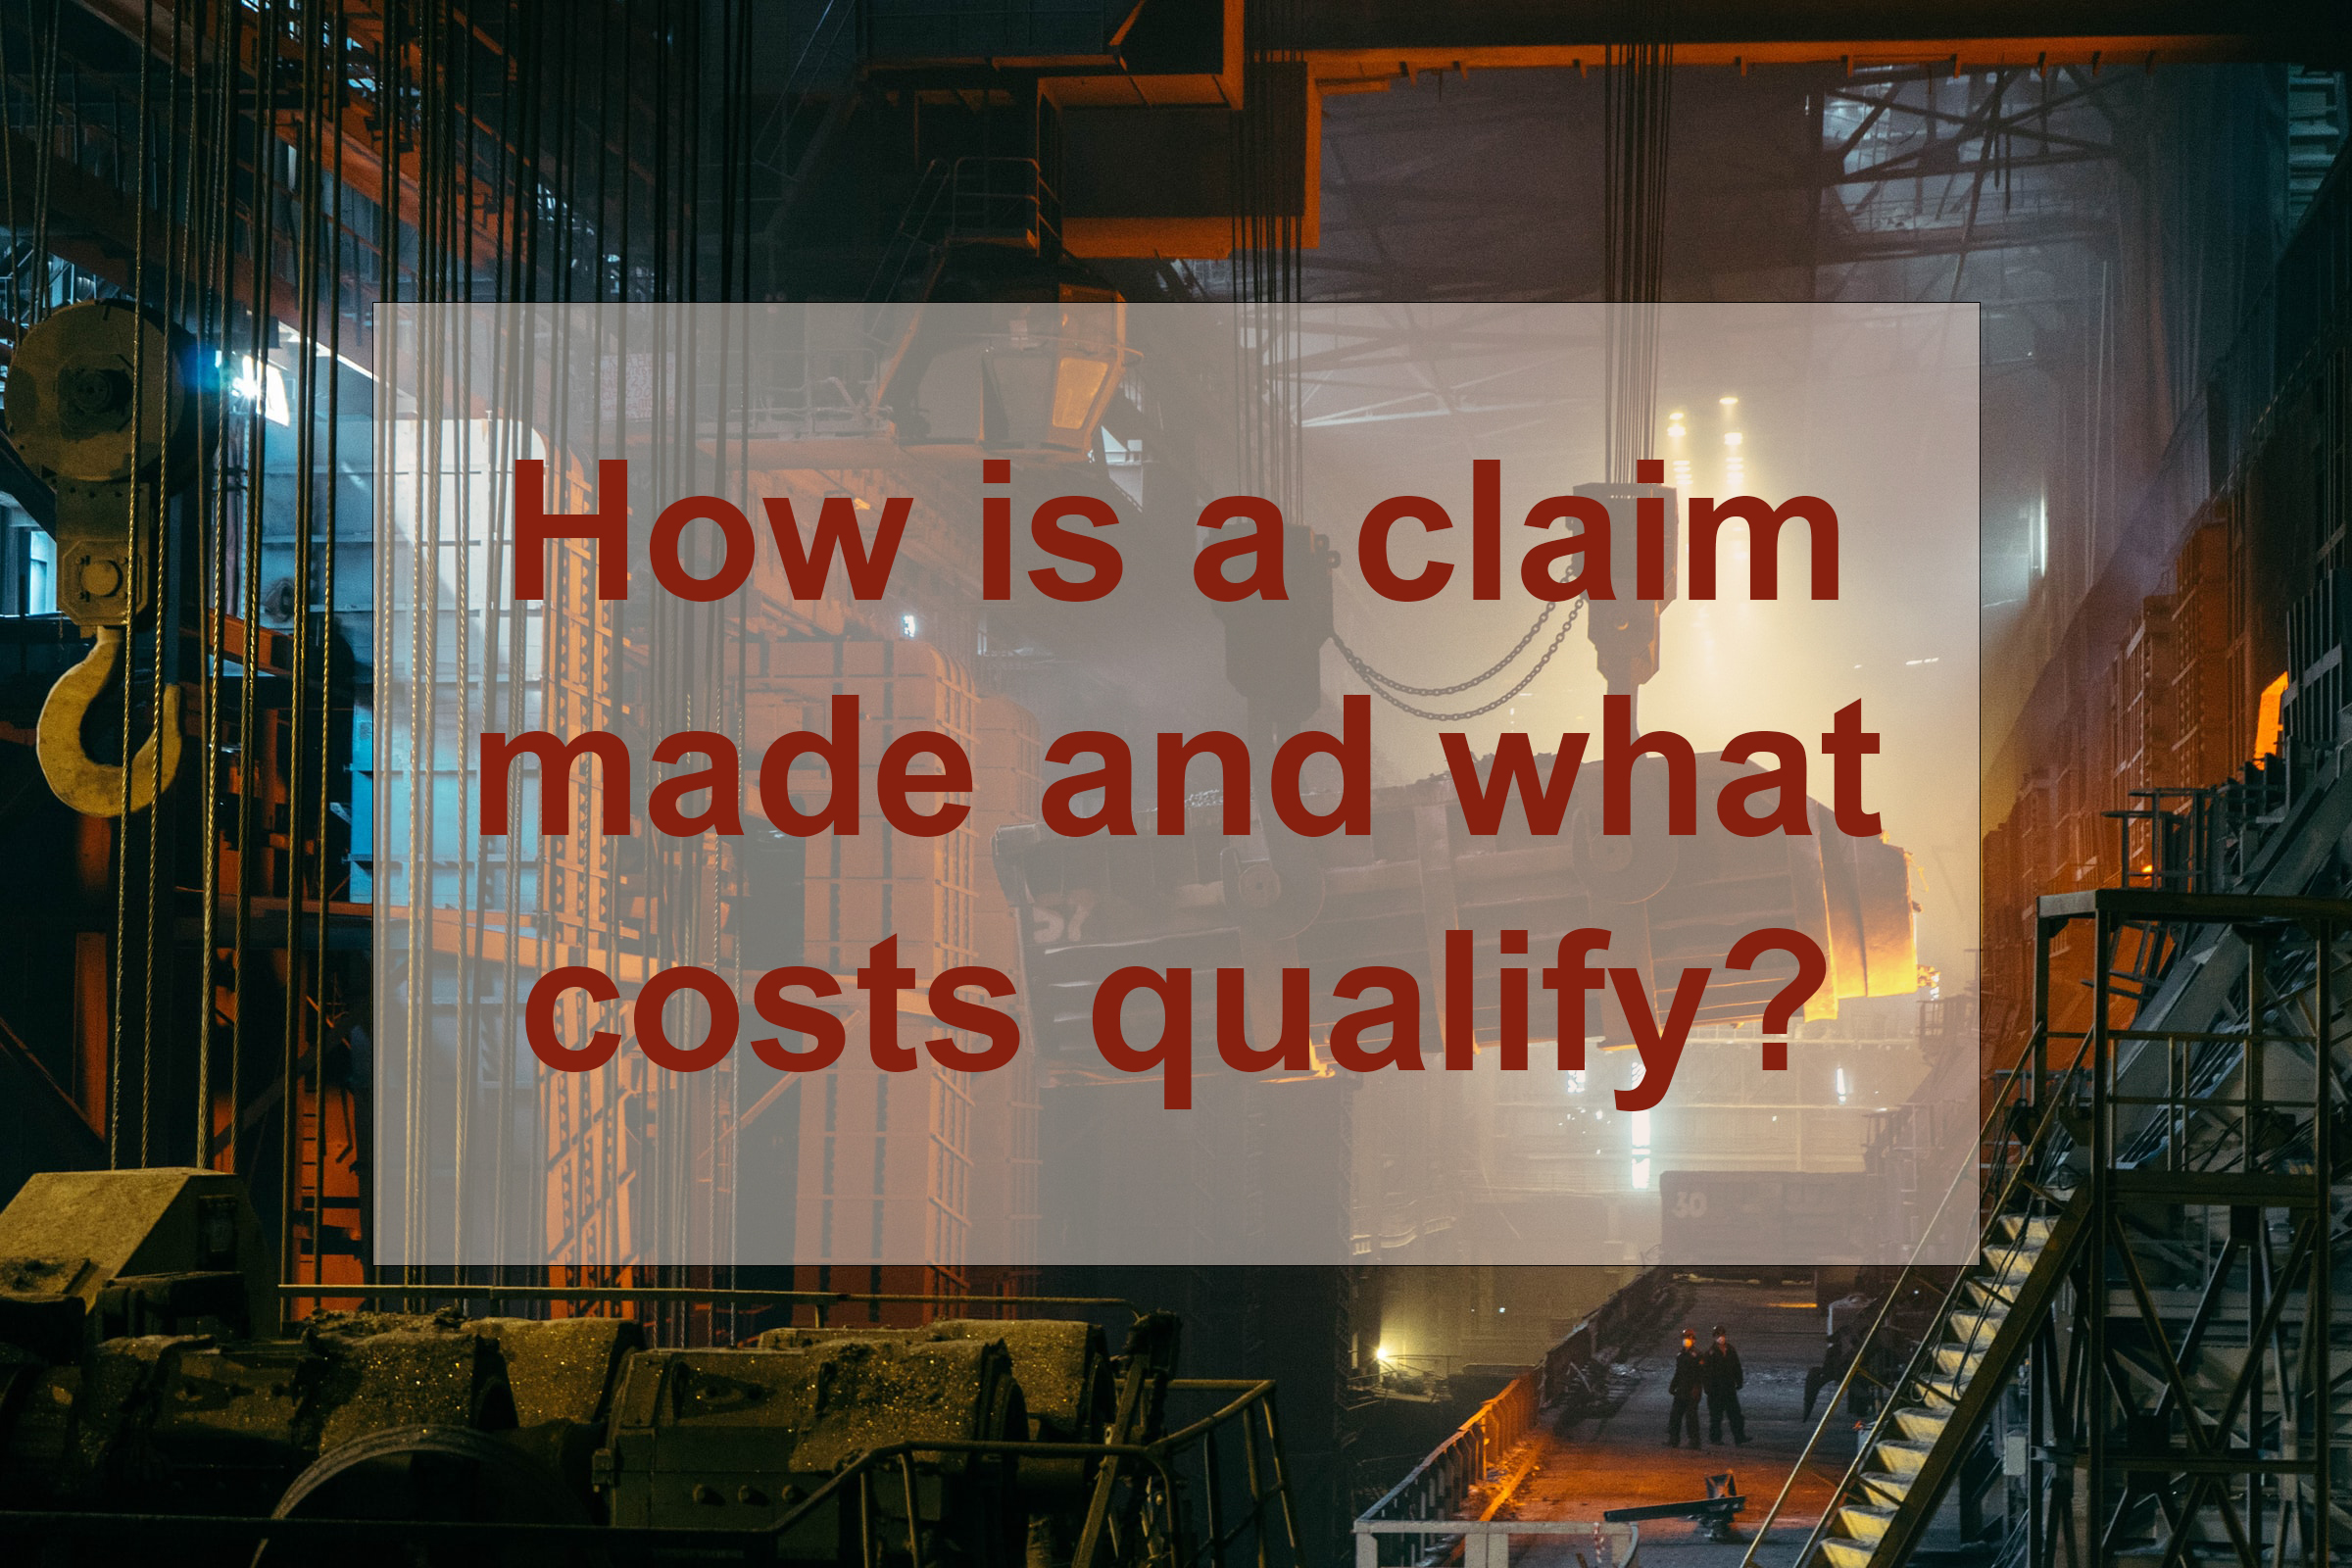 How is a claim made and what costs qualify for R&D?